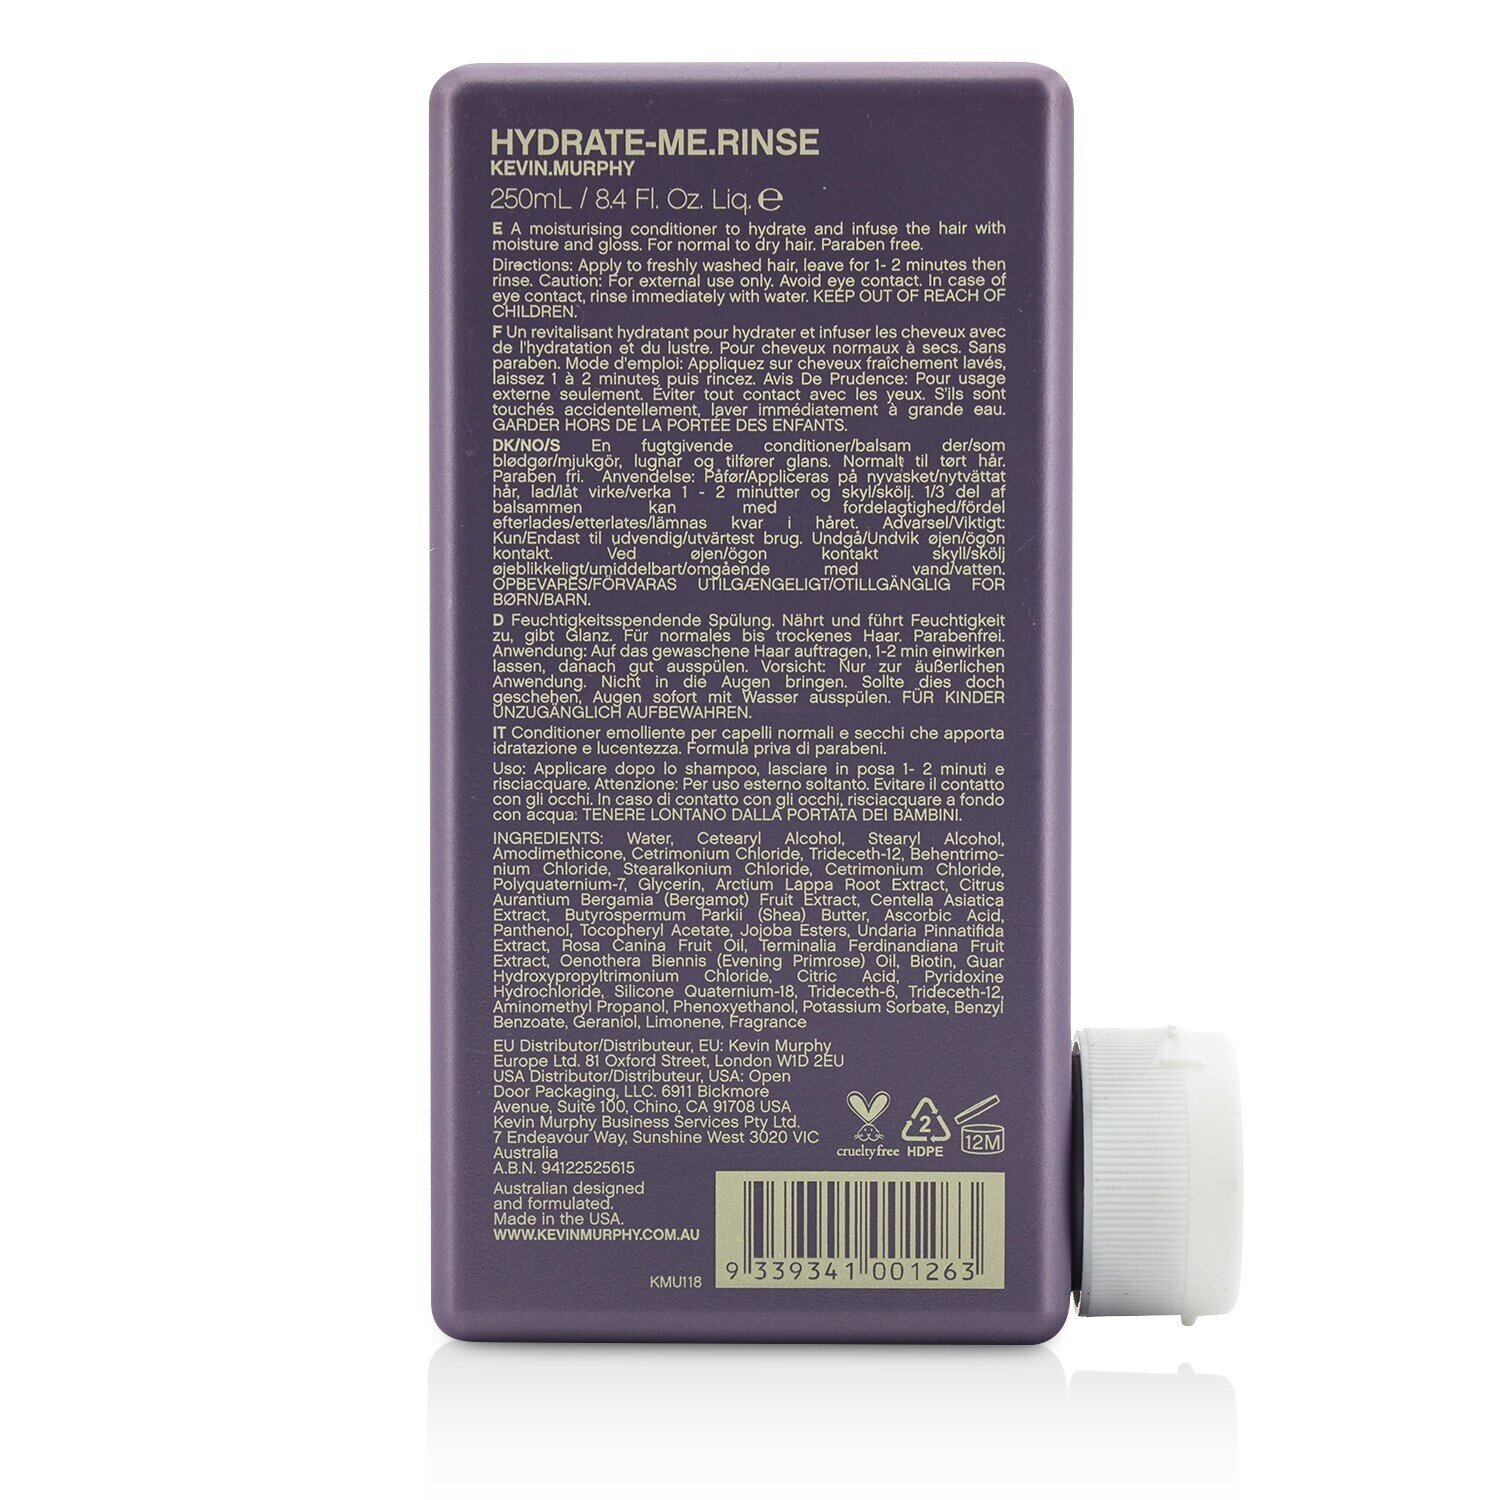 Kevin-Murphy-Hydrate-Me-Rinse-Kakadu-Plum-Moisture-System-for-Colored-Hair